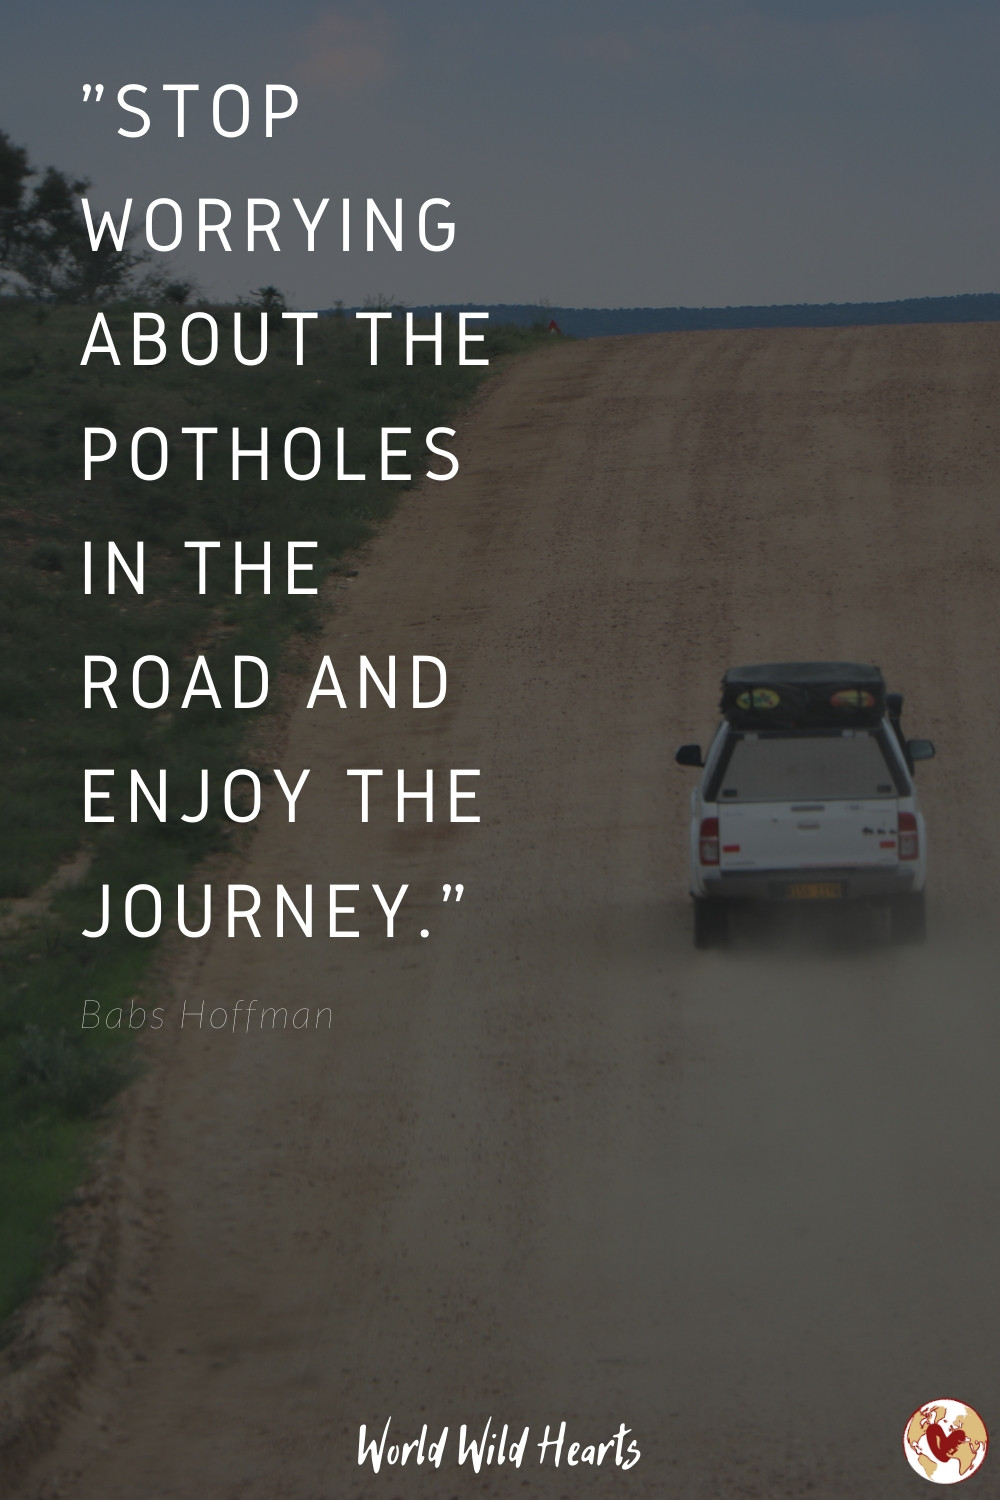 Travel quote inspirational about journey